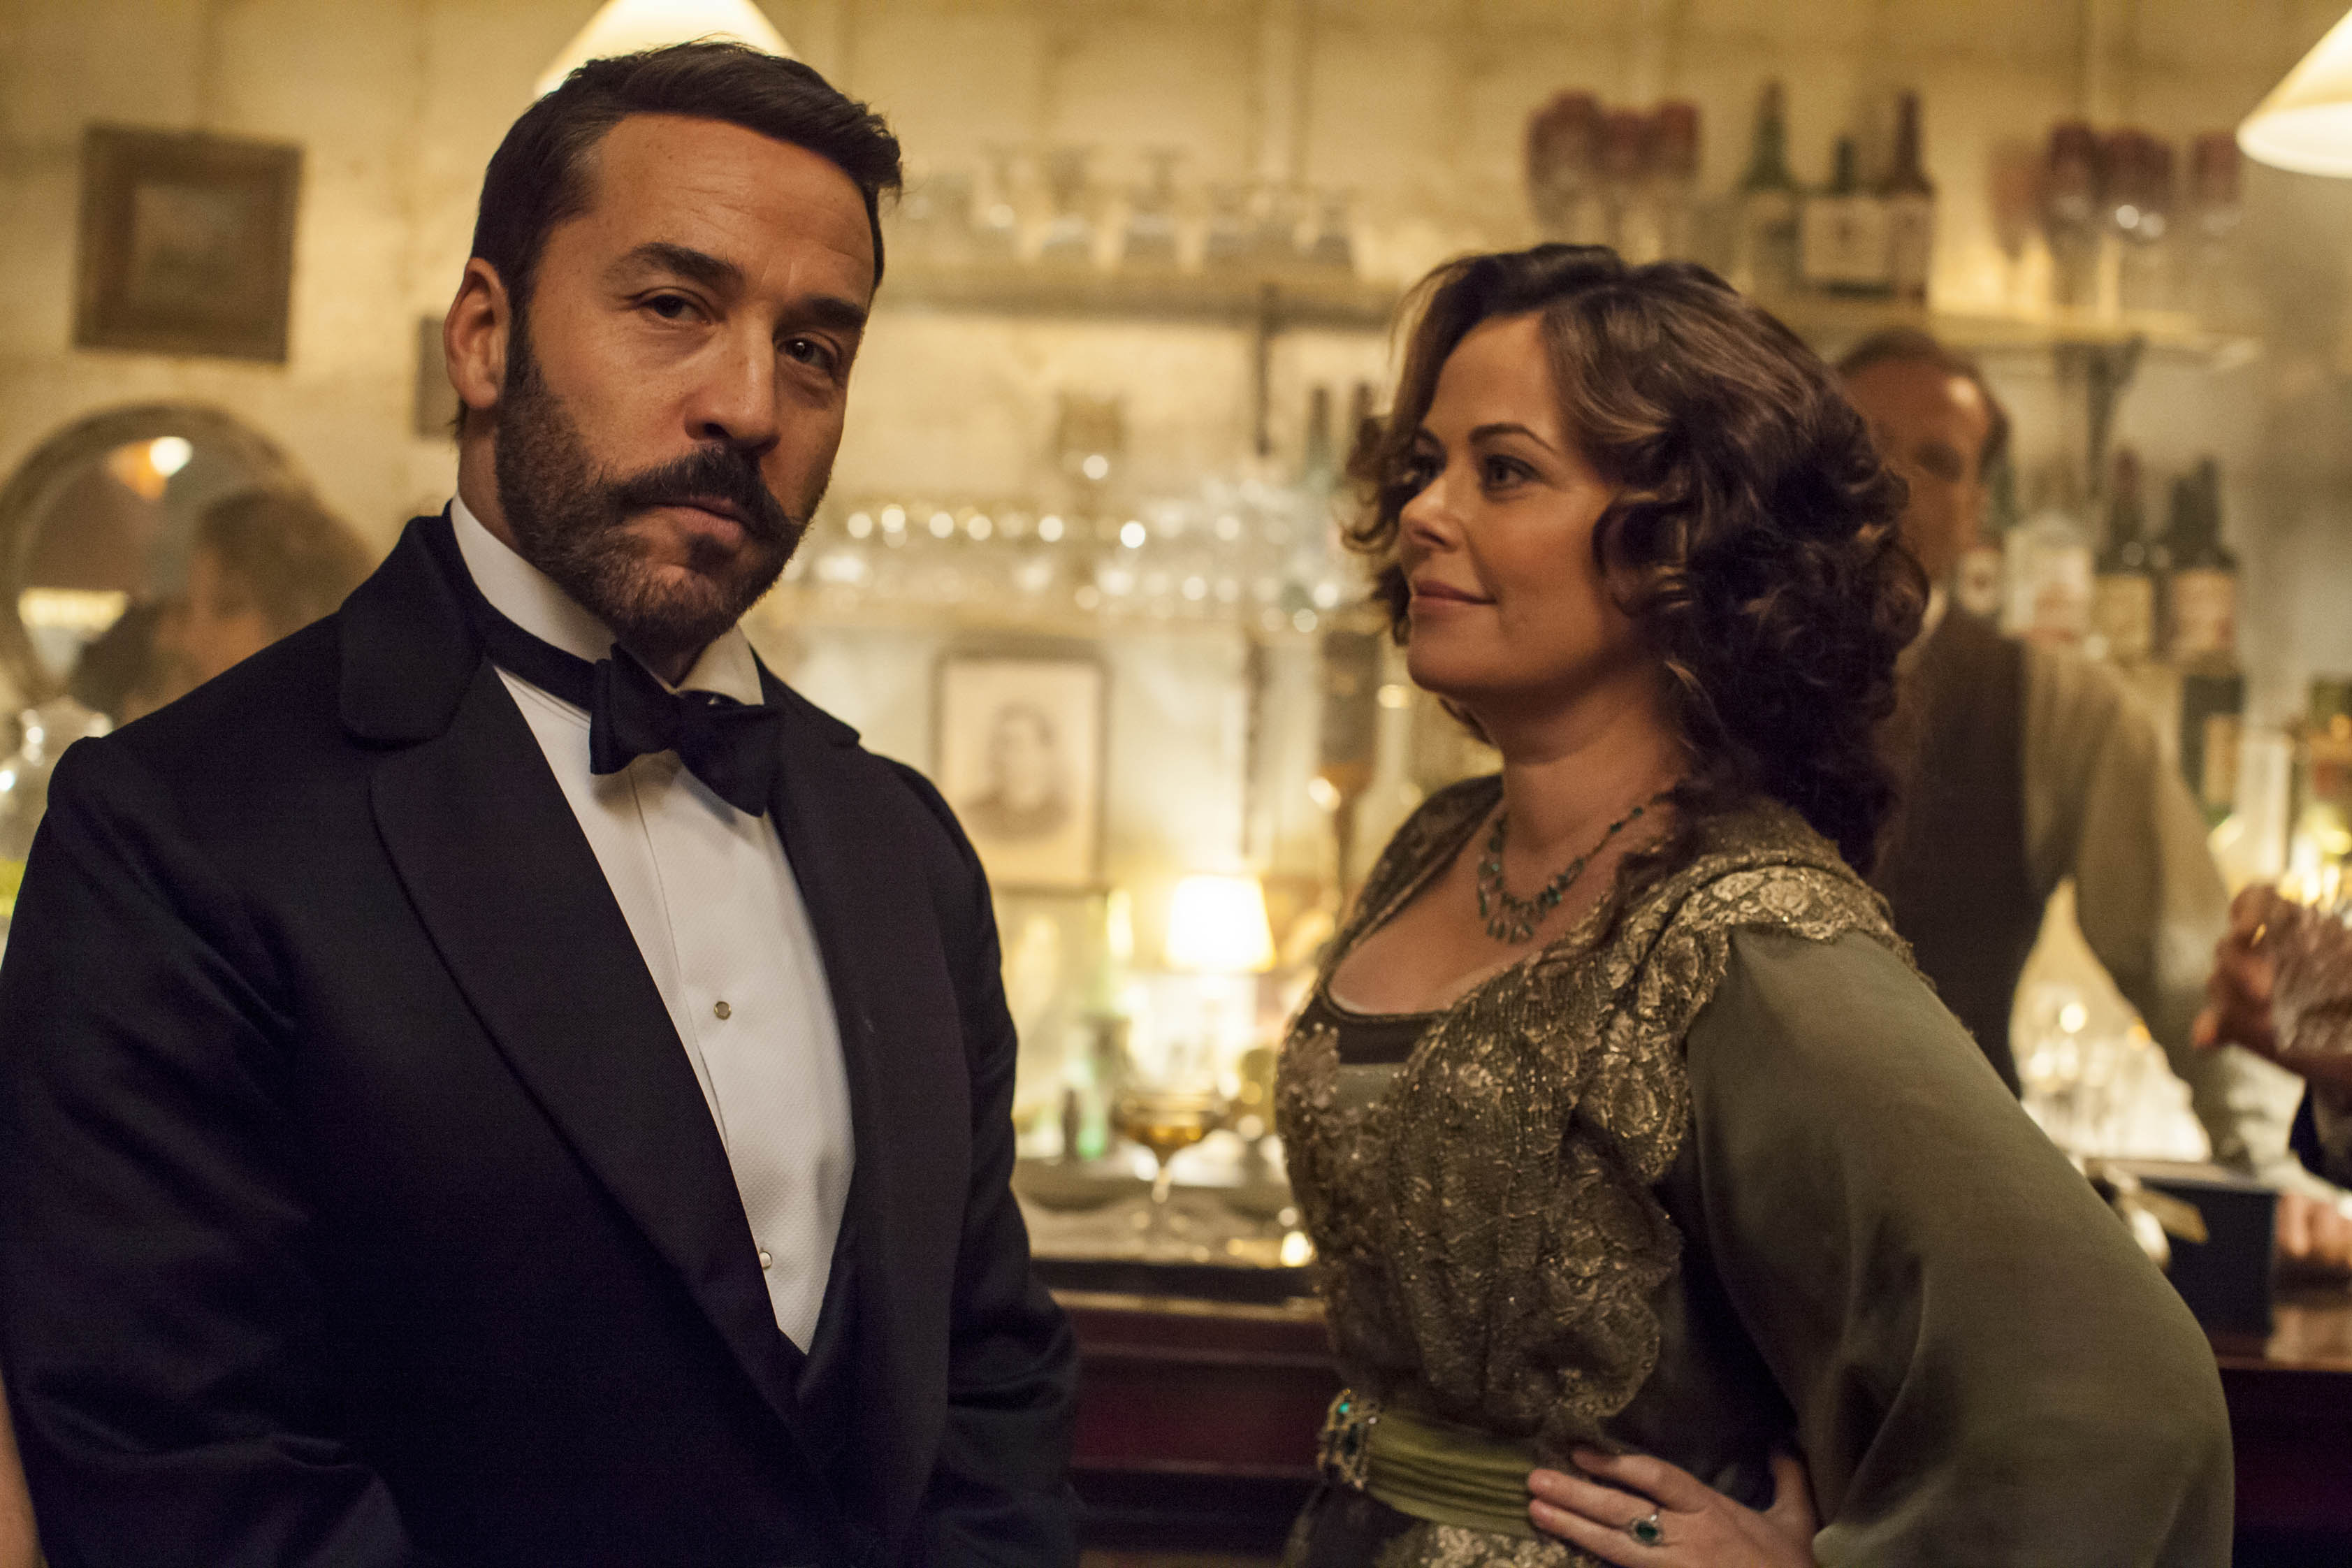 Jeremy Piven as Harry Selfridge and Polly Walker as Delphine Day in Mr Selfridge